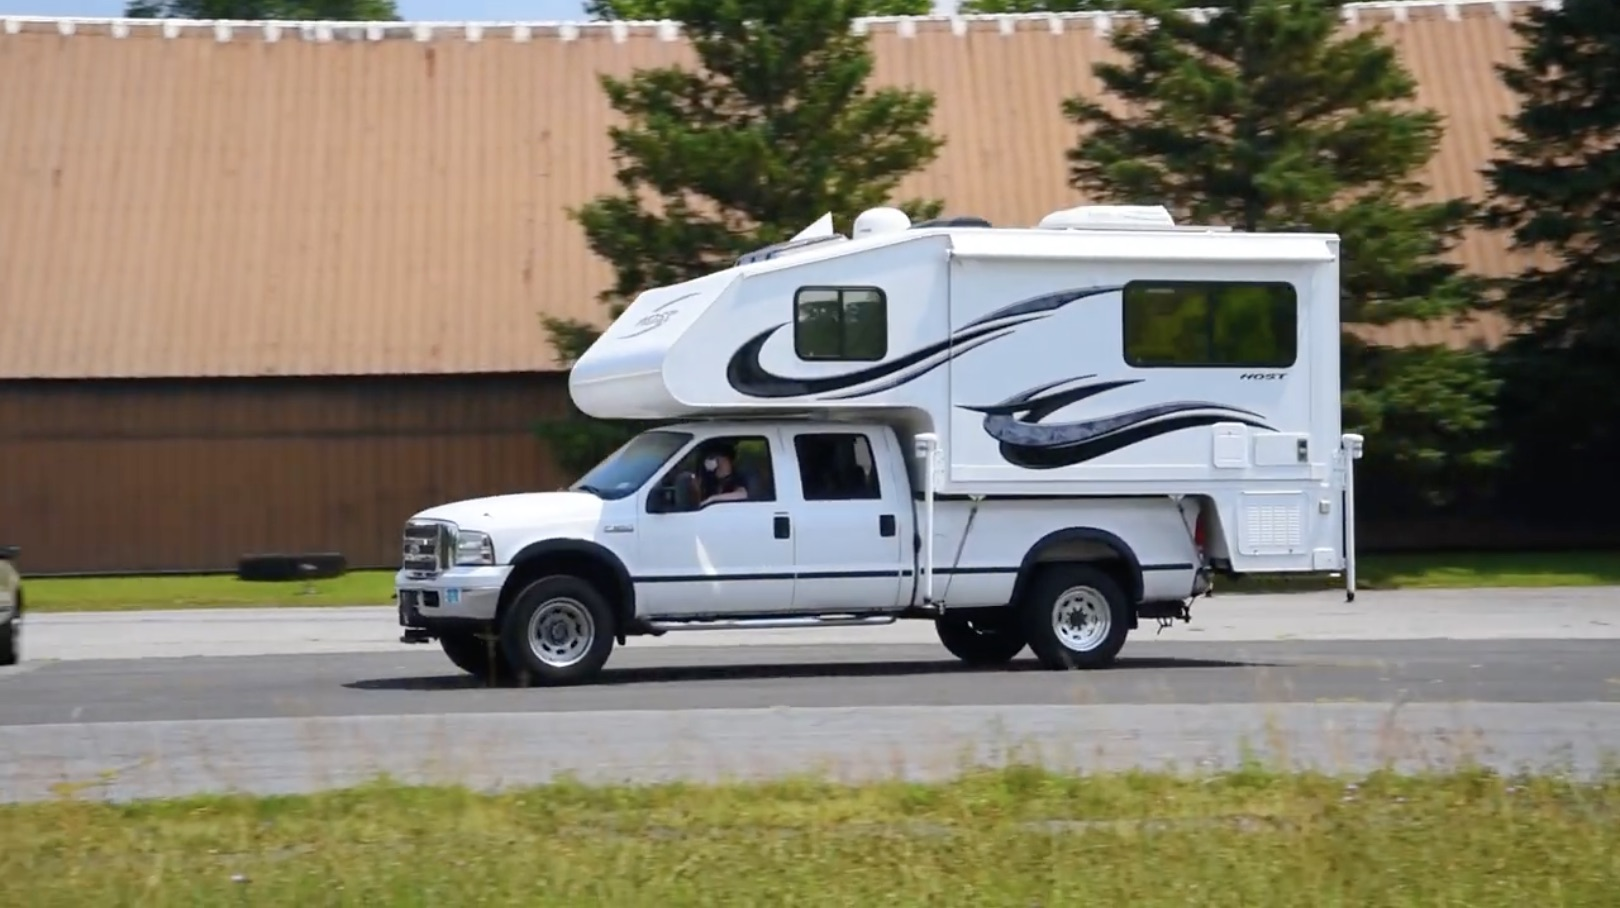 Great Escape: What Living With A Slide-In Camper Is Like In A Nutshell